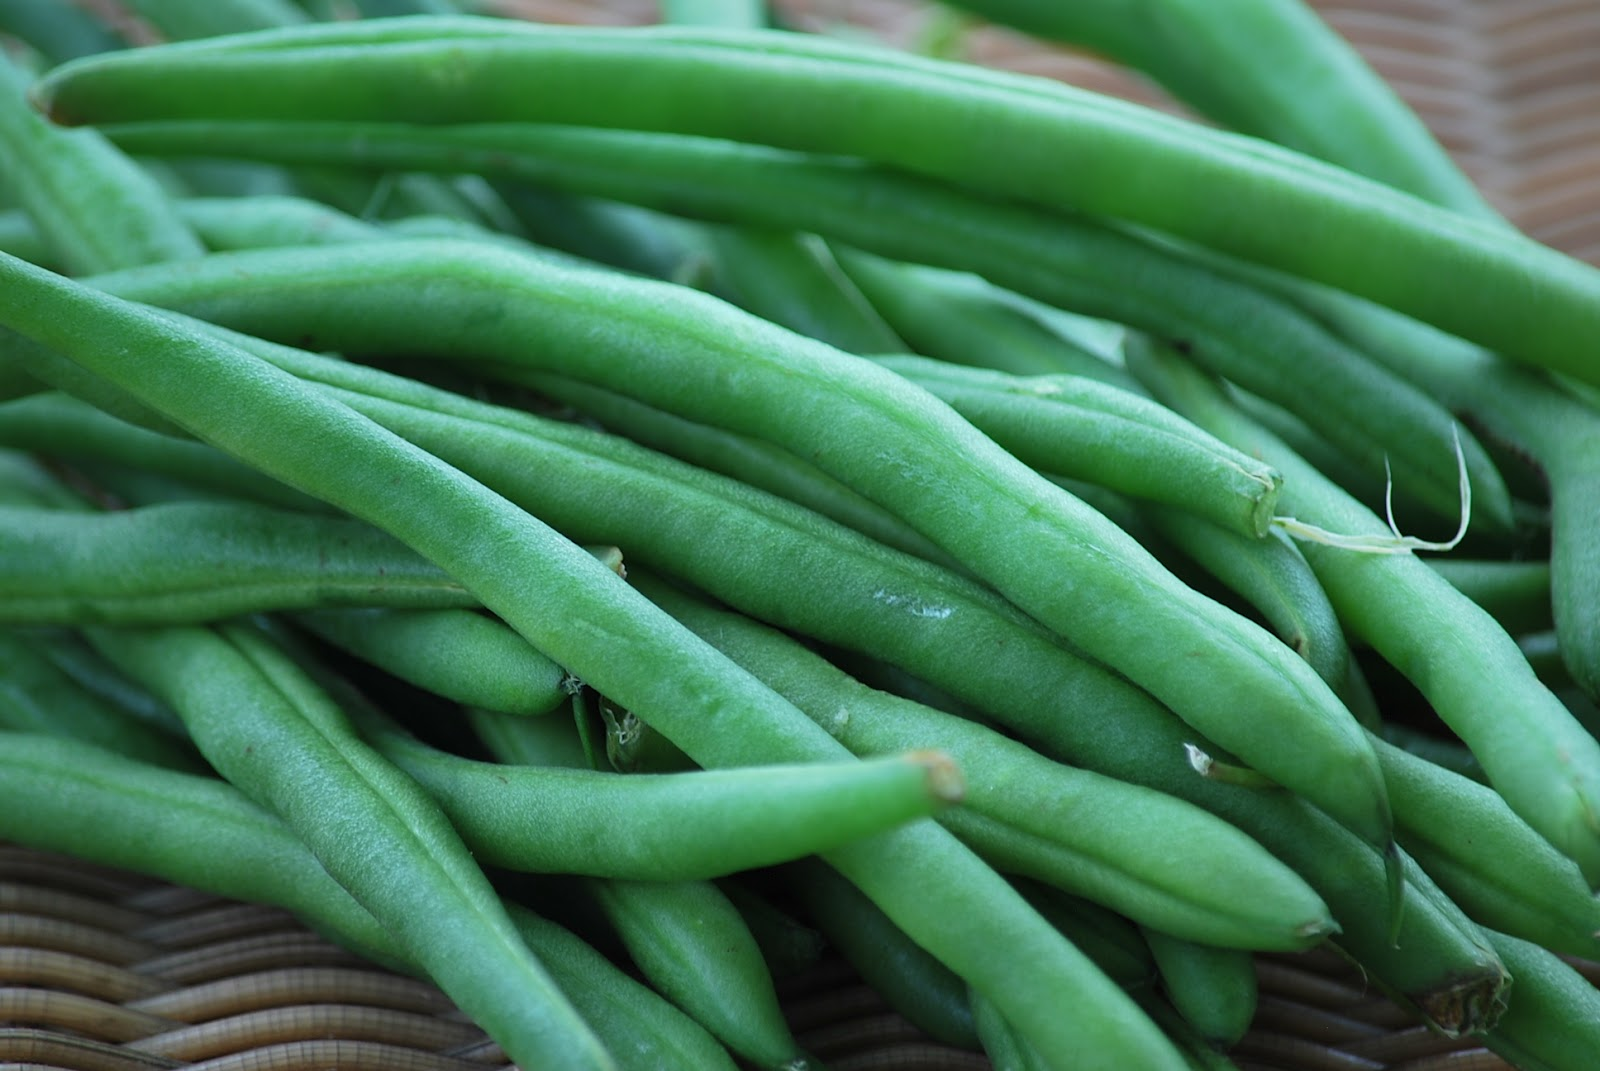 roasted green beans 1 pound green beans 1 tablespoon olive